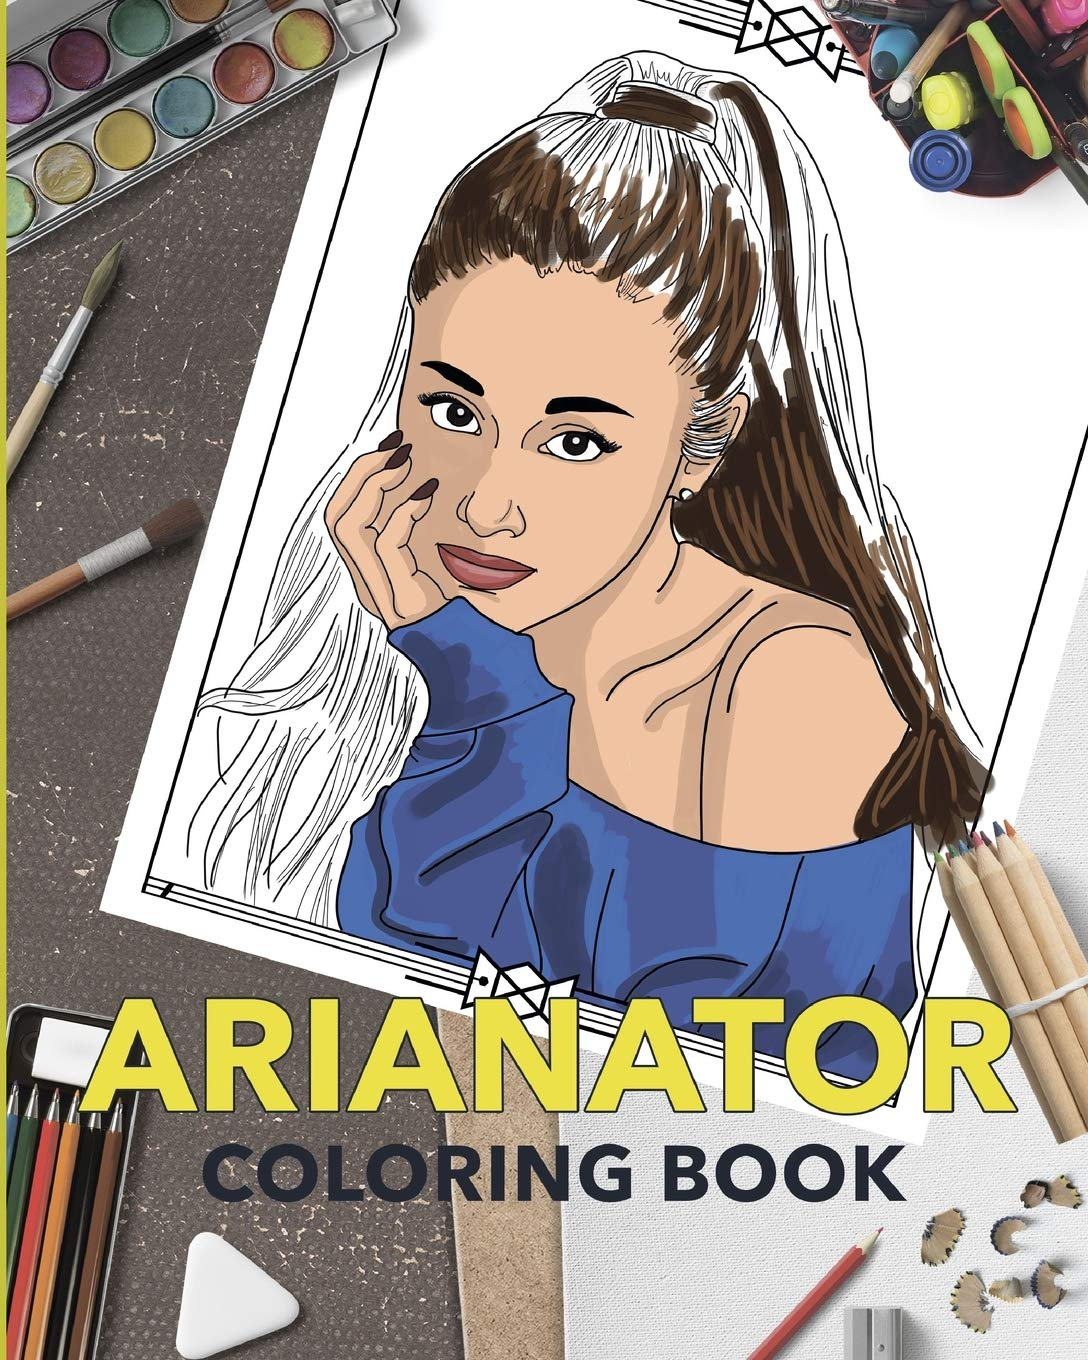 Arianator Coloring Book Ariana Grande Fans Coloring Book For Fans Kids Teens And Adults Amazon Co Uk Fan Biggest Books